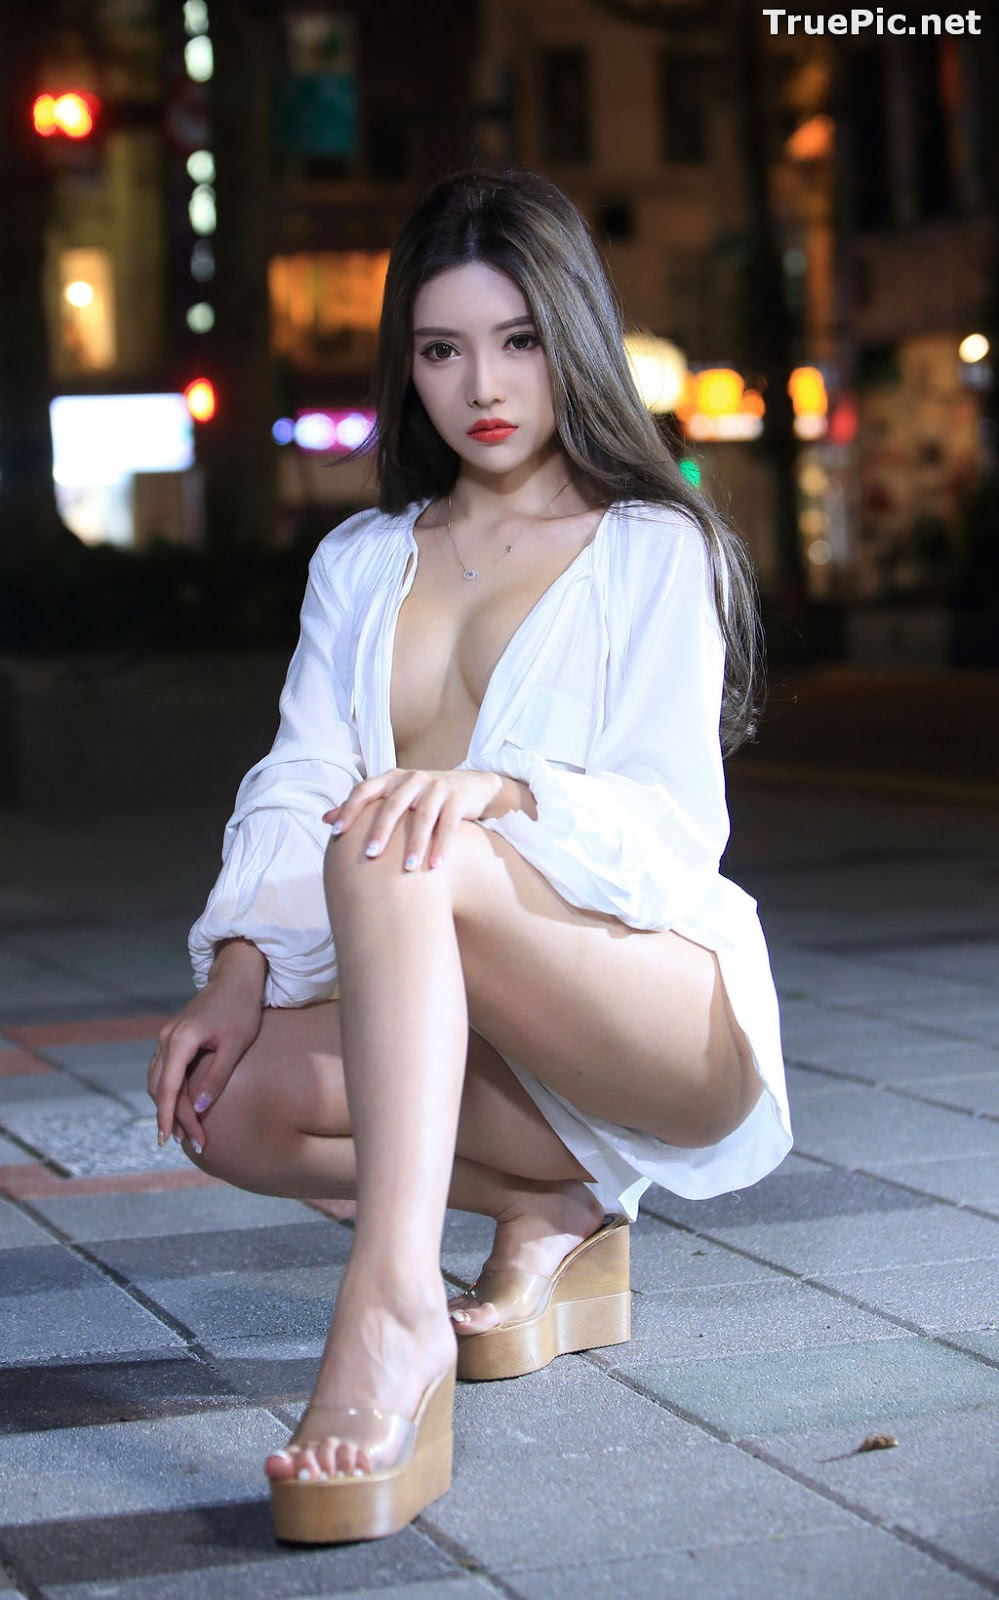 Image Taiwanese Model – 莊舒潔 (ViVi) – Sexy and Pure Baby In Night - TruePic.net - Picture-24